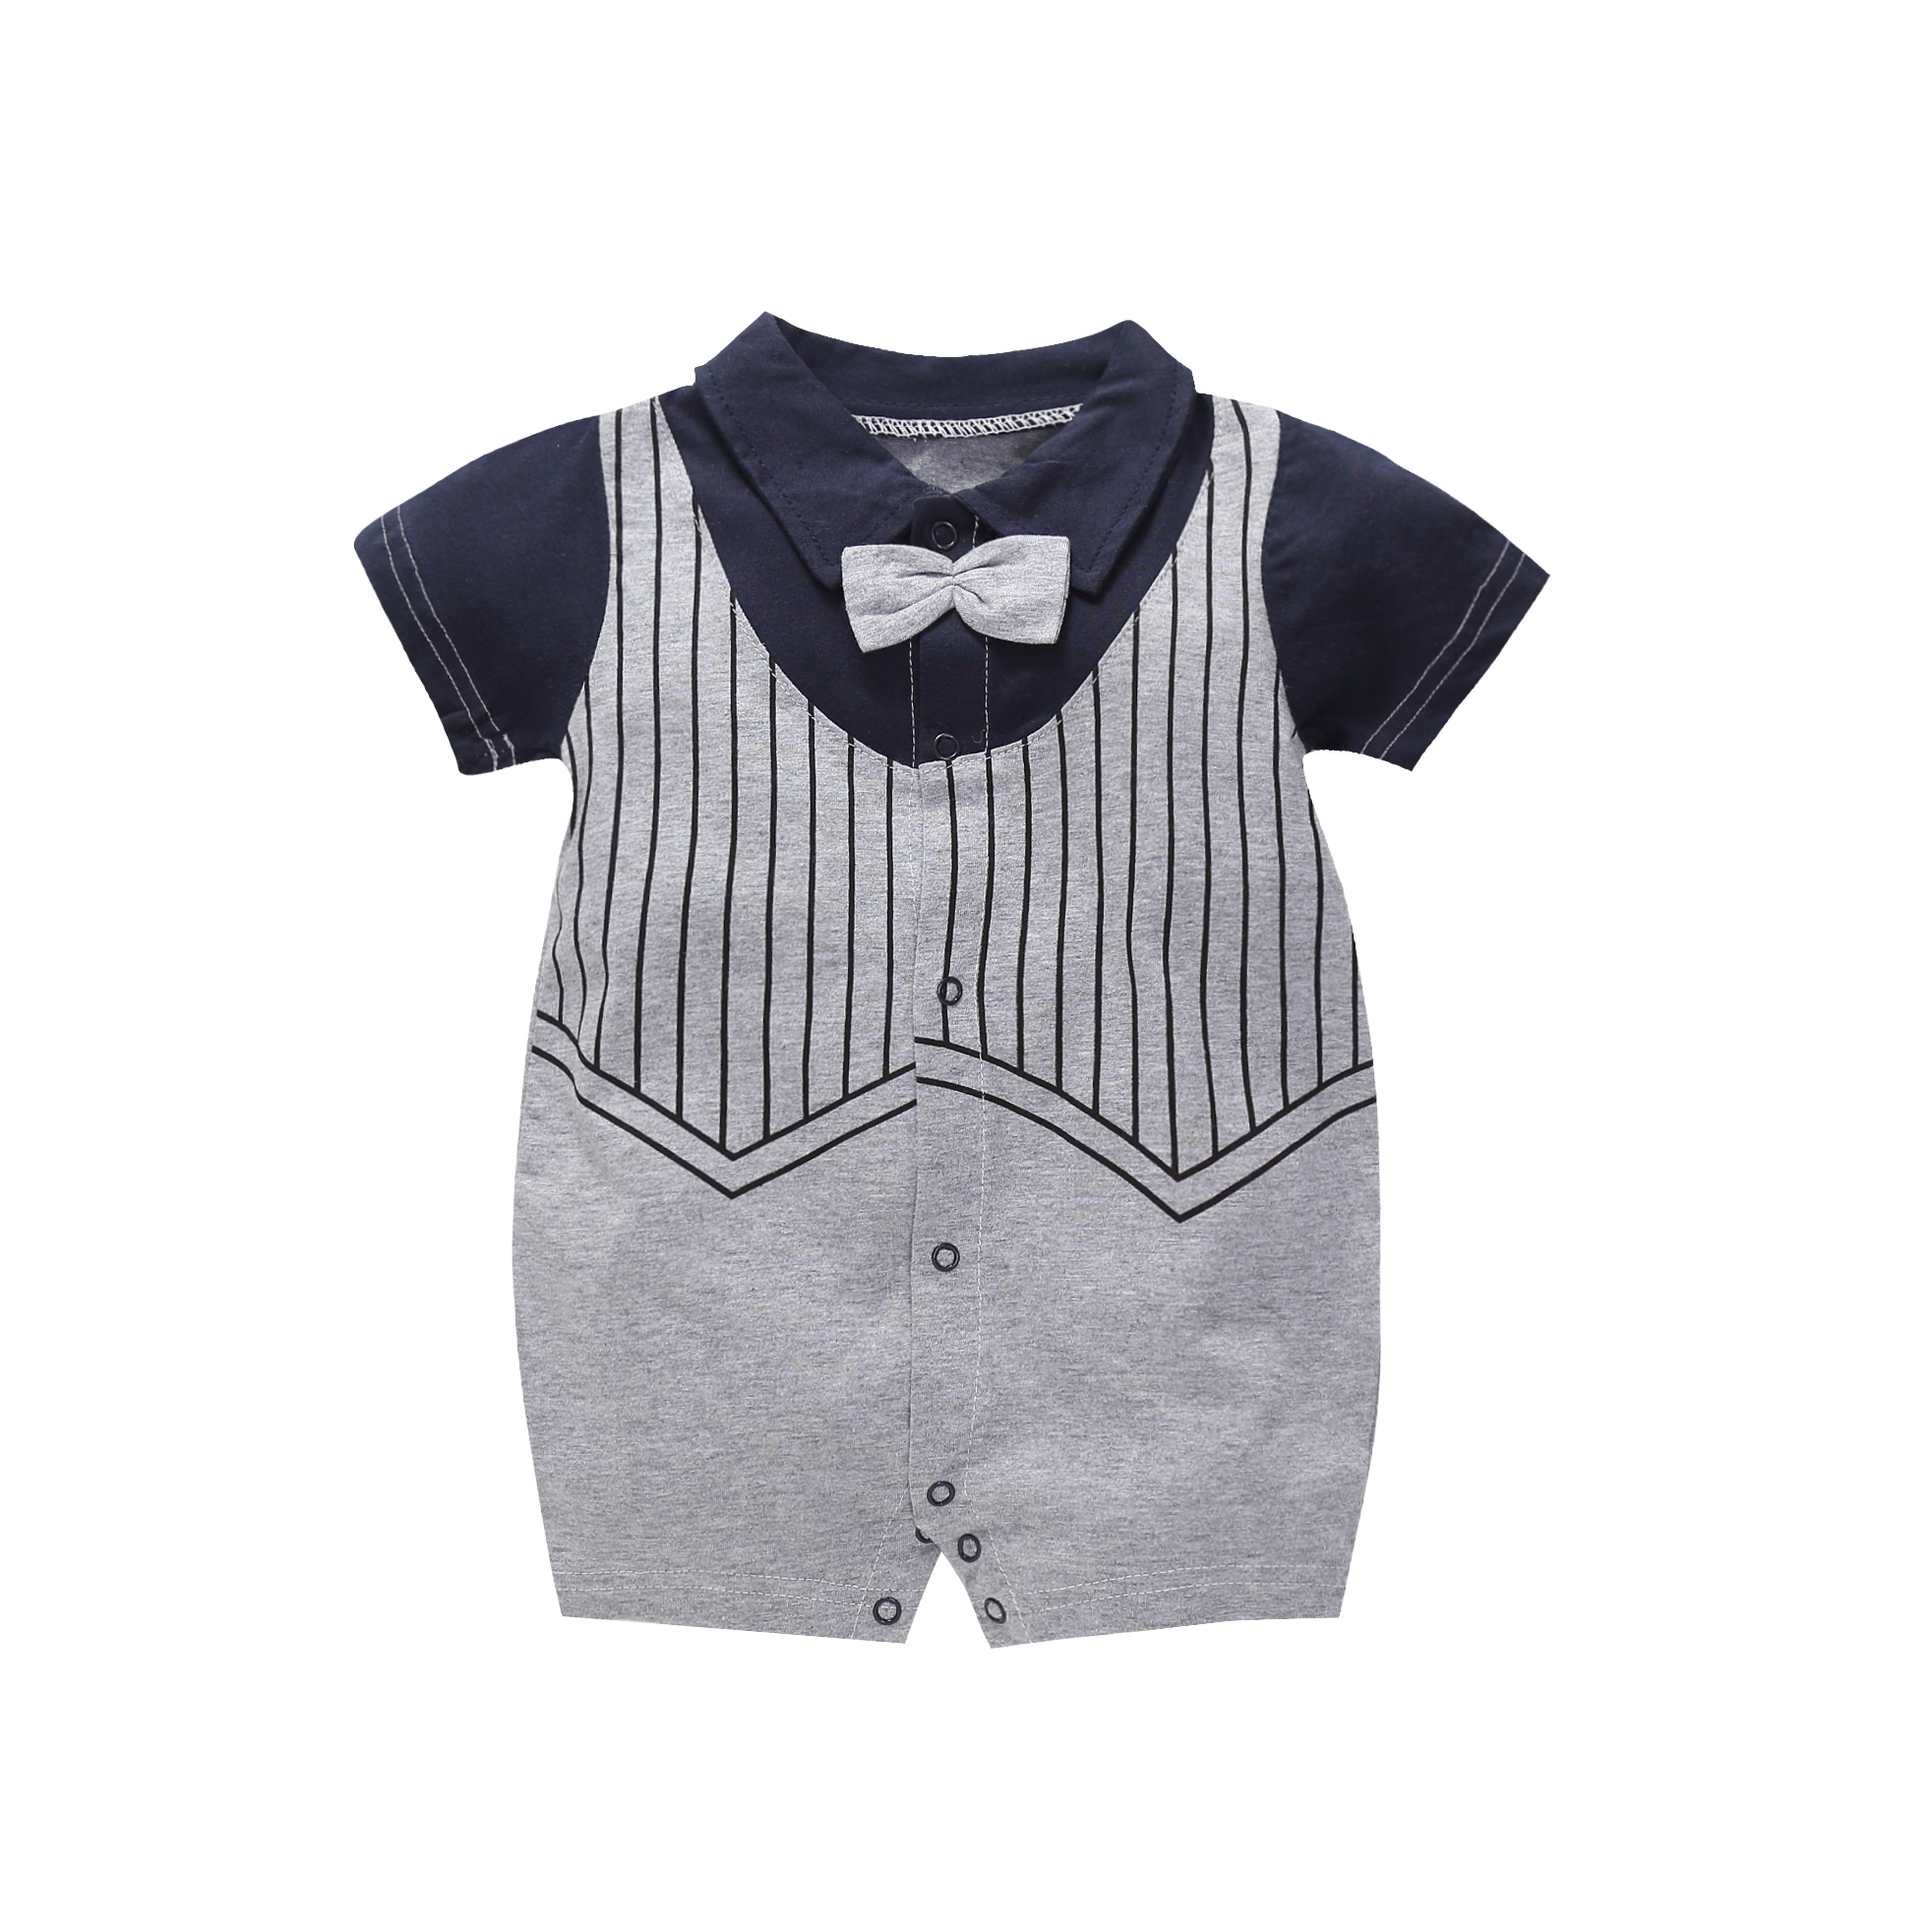 Babygrow With Spots Dots Circles 0-3 Months Commodities Are Available Without Restriction One-pieces Baby & Toddler Clothing